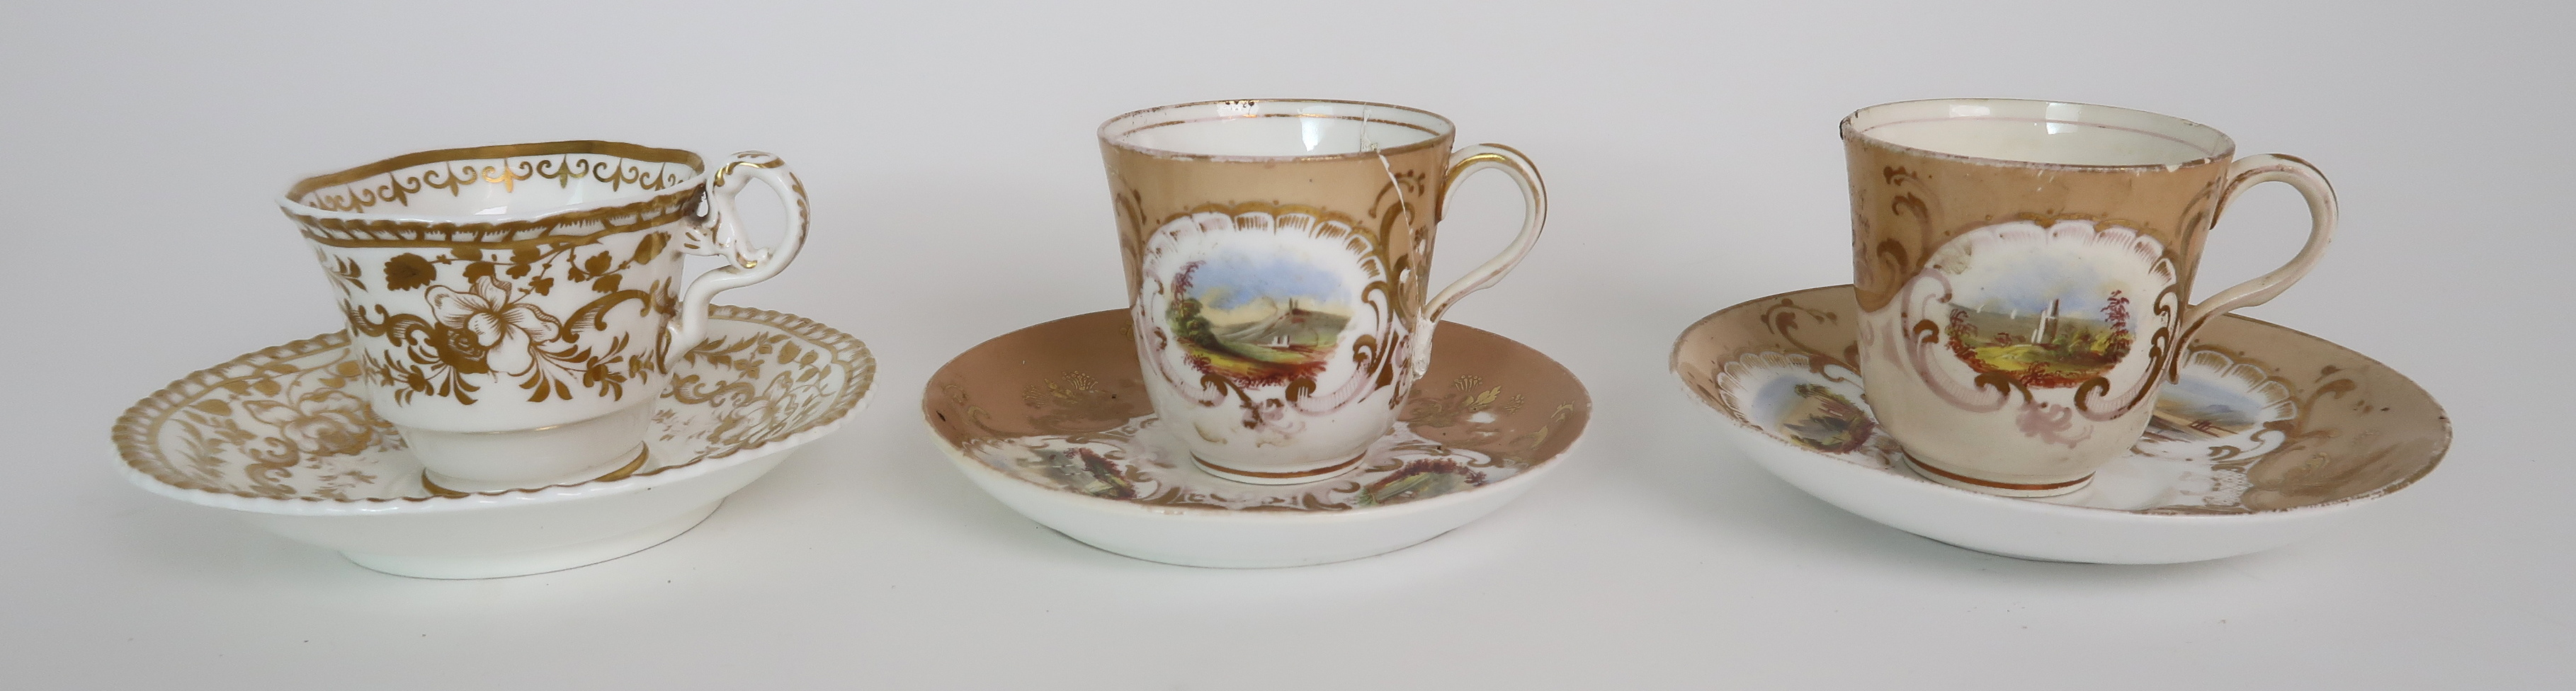 A COLLECTION OF 19TH CENTURY ENGLISH TEA AND COFFEE WARES the white ground with either grey and gilt - Image 9 of 22